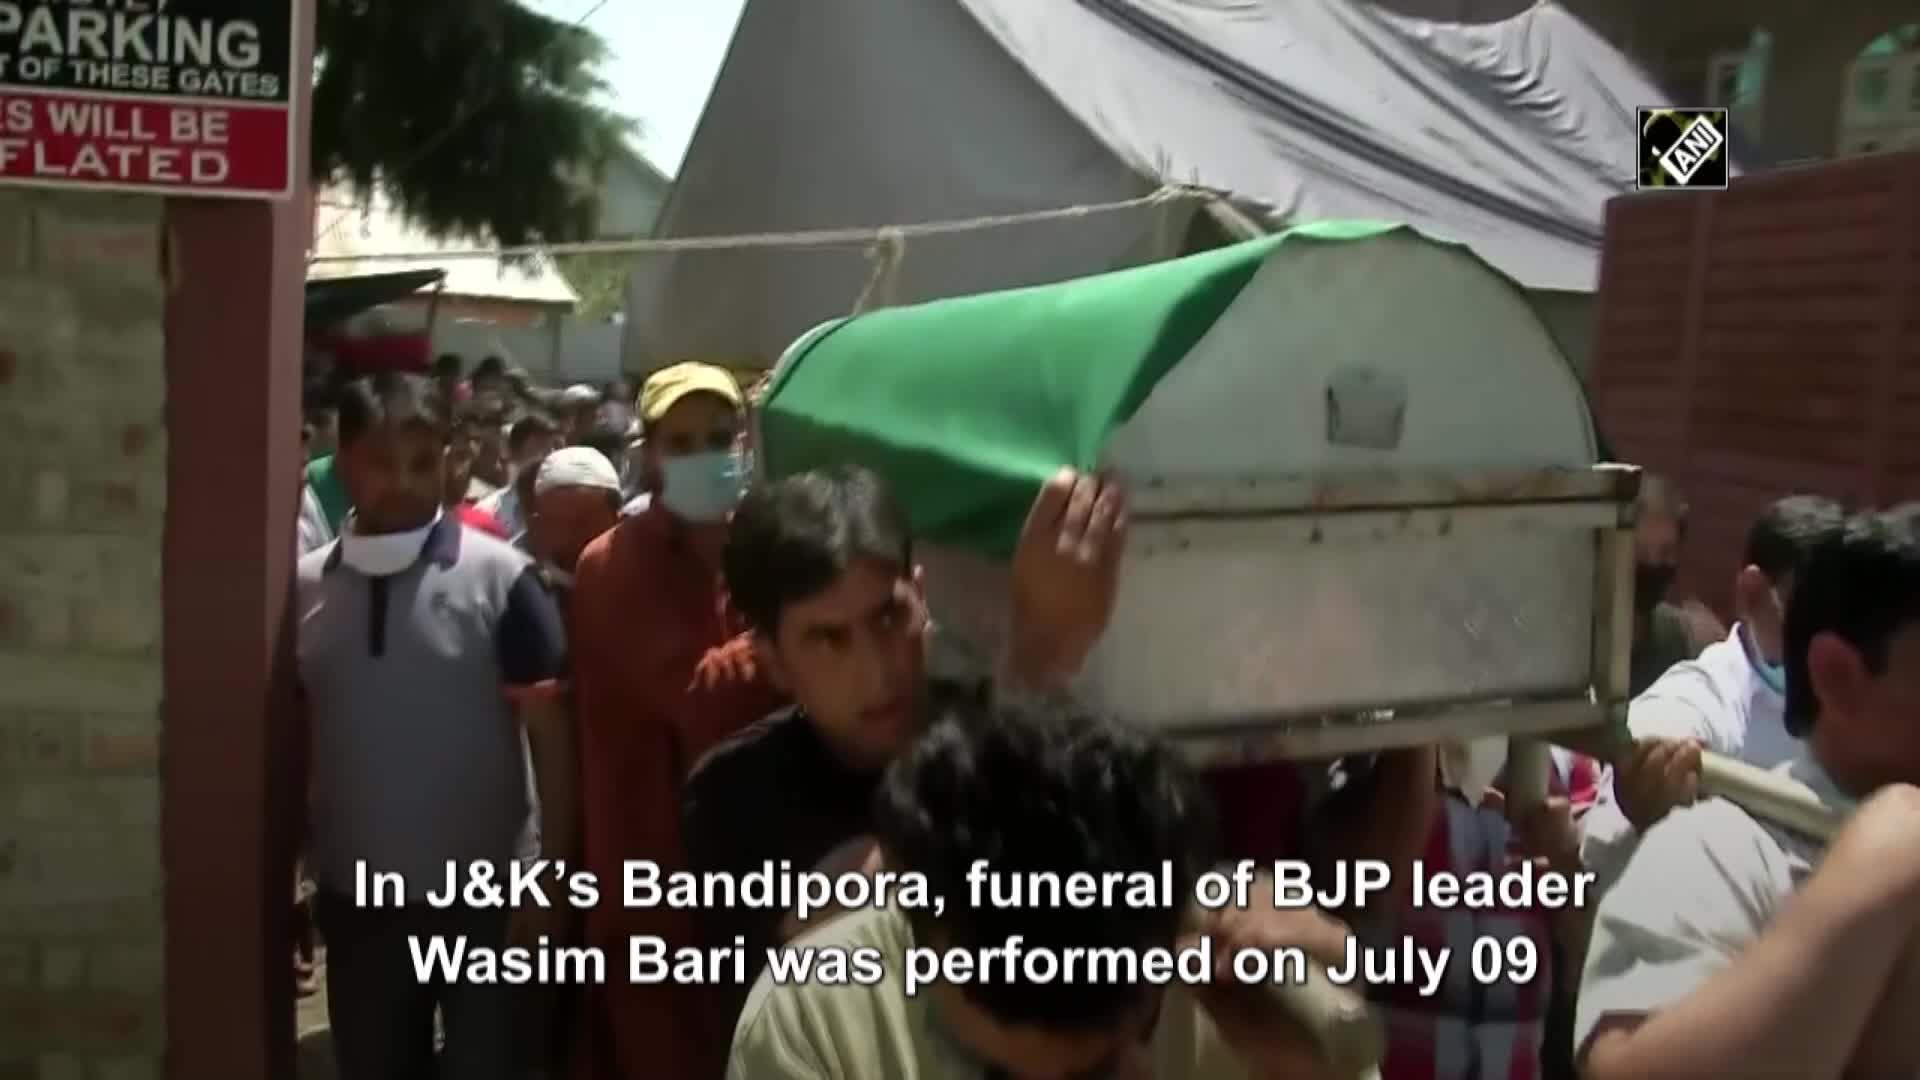 Funeral of Wasim Bari, his father and brother performed in JandK's Bandipora